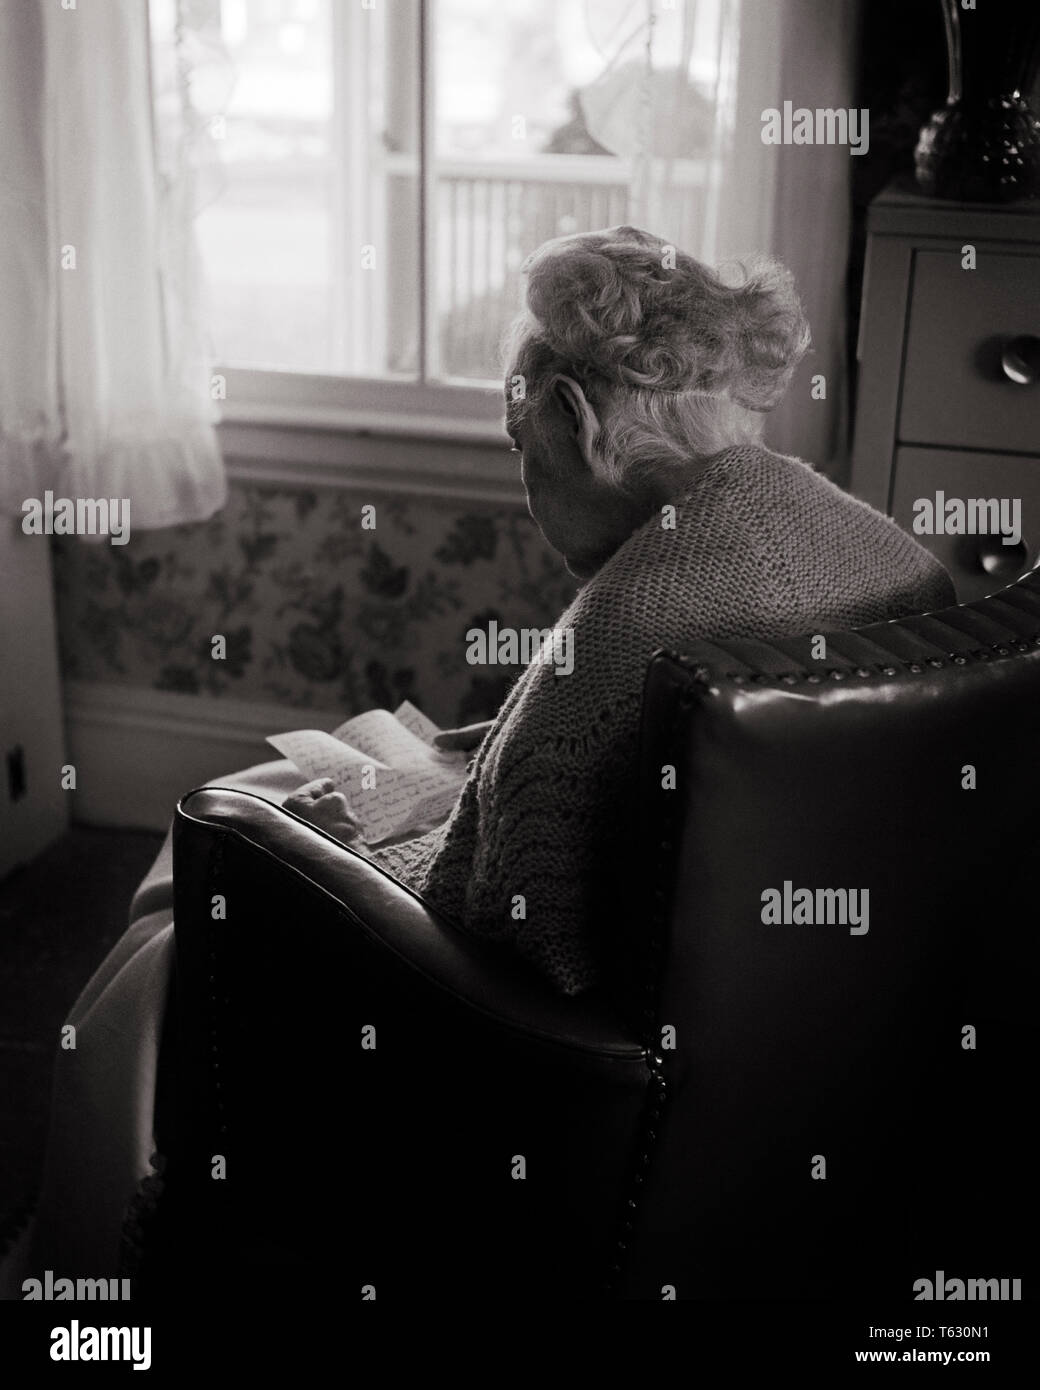 1960s ANONYMOUS ELDERLY WOMAN SITTING IN CHAIR BY SUNLIT WINDOW  READING A HANDWRITTEN LETTER - s8784 HAR001 HARS HOME LIFE COPY SPACE FRIENDSHIP HALF-LENGTH LADIES PERSONS INSPIRATION CARING SERENITY SENIOR ADULT B&W SADNESS SENIOR WOMAN DREAMS OLDSTERS HIGH ANGLE OLDSTER AGING POWERFUL REAR VIEW FEELING MOOD SHAWL TIMELESS ELDERS CONNECTION NURSING HOME CONCEPTUAL FORGOTTEN HANDWRITTEN ANONYMOUS REMEMBERED ASSISTED LIVING BACK VIEW ELDERLY WOMAN EMOTION EMOTIONAL EMOTIONS FRAIL LONGEVITY BLACK AND WHITE CAUCASIAN ETHNICITY HAR001 OLD FASHIONED - Stock Image